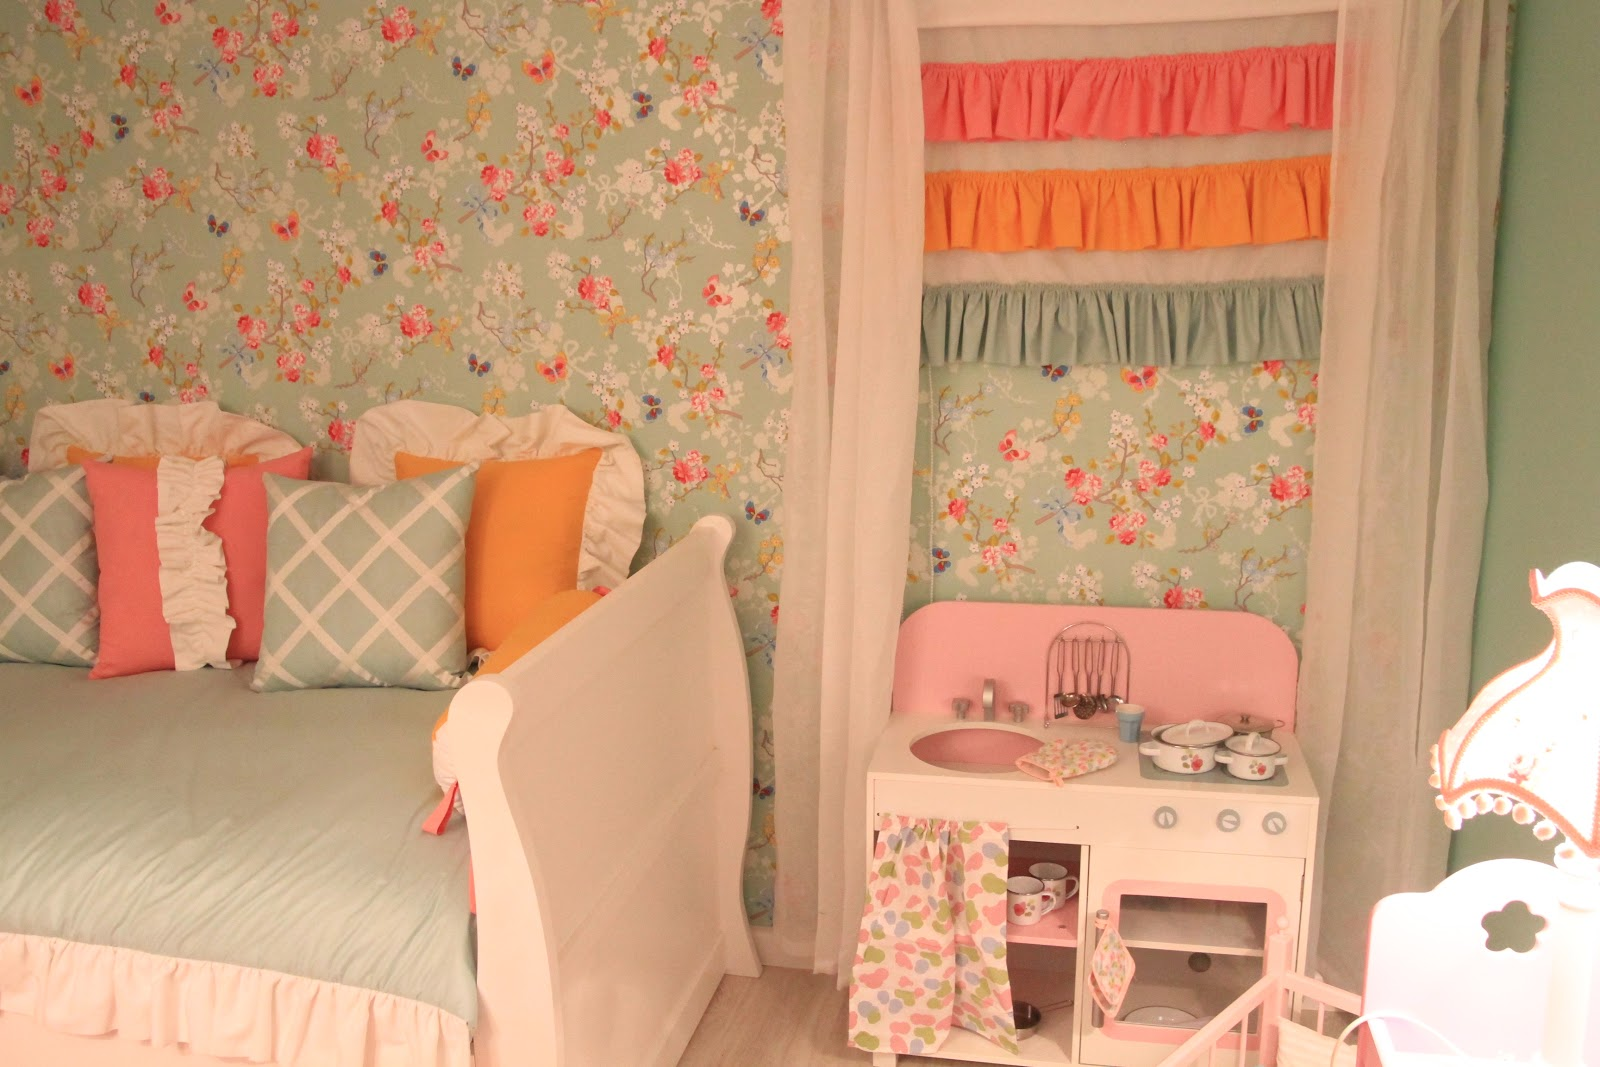 Home styling ana antunes querido mudei a casa tv show - Papel engomado leroy merlin ...